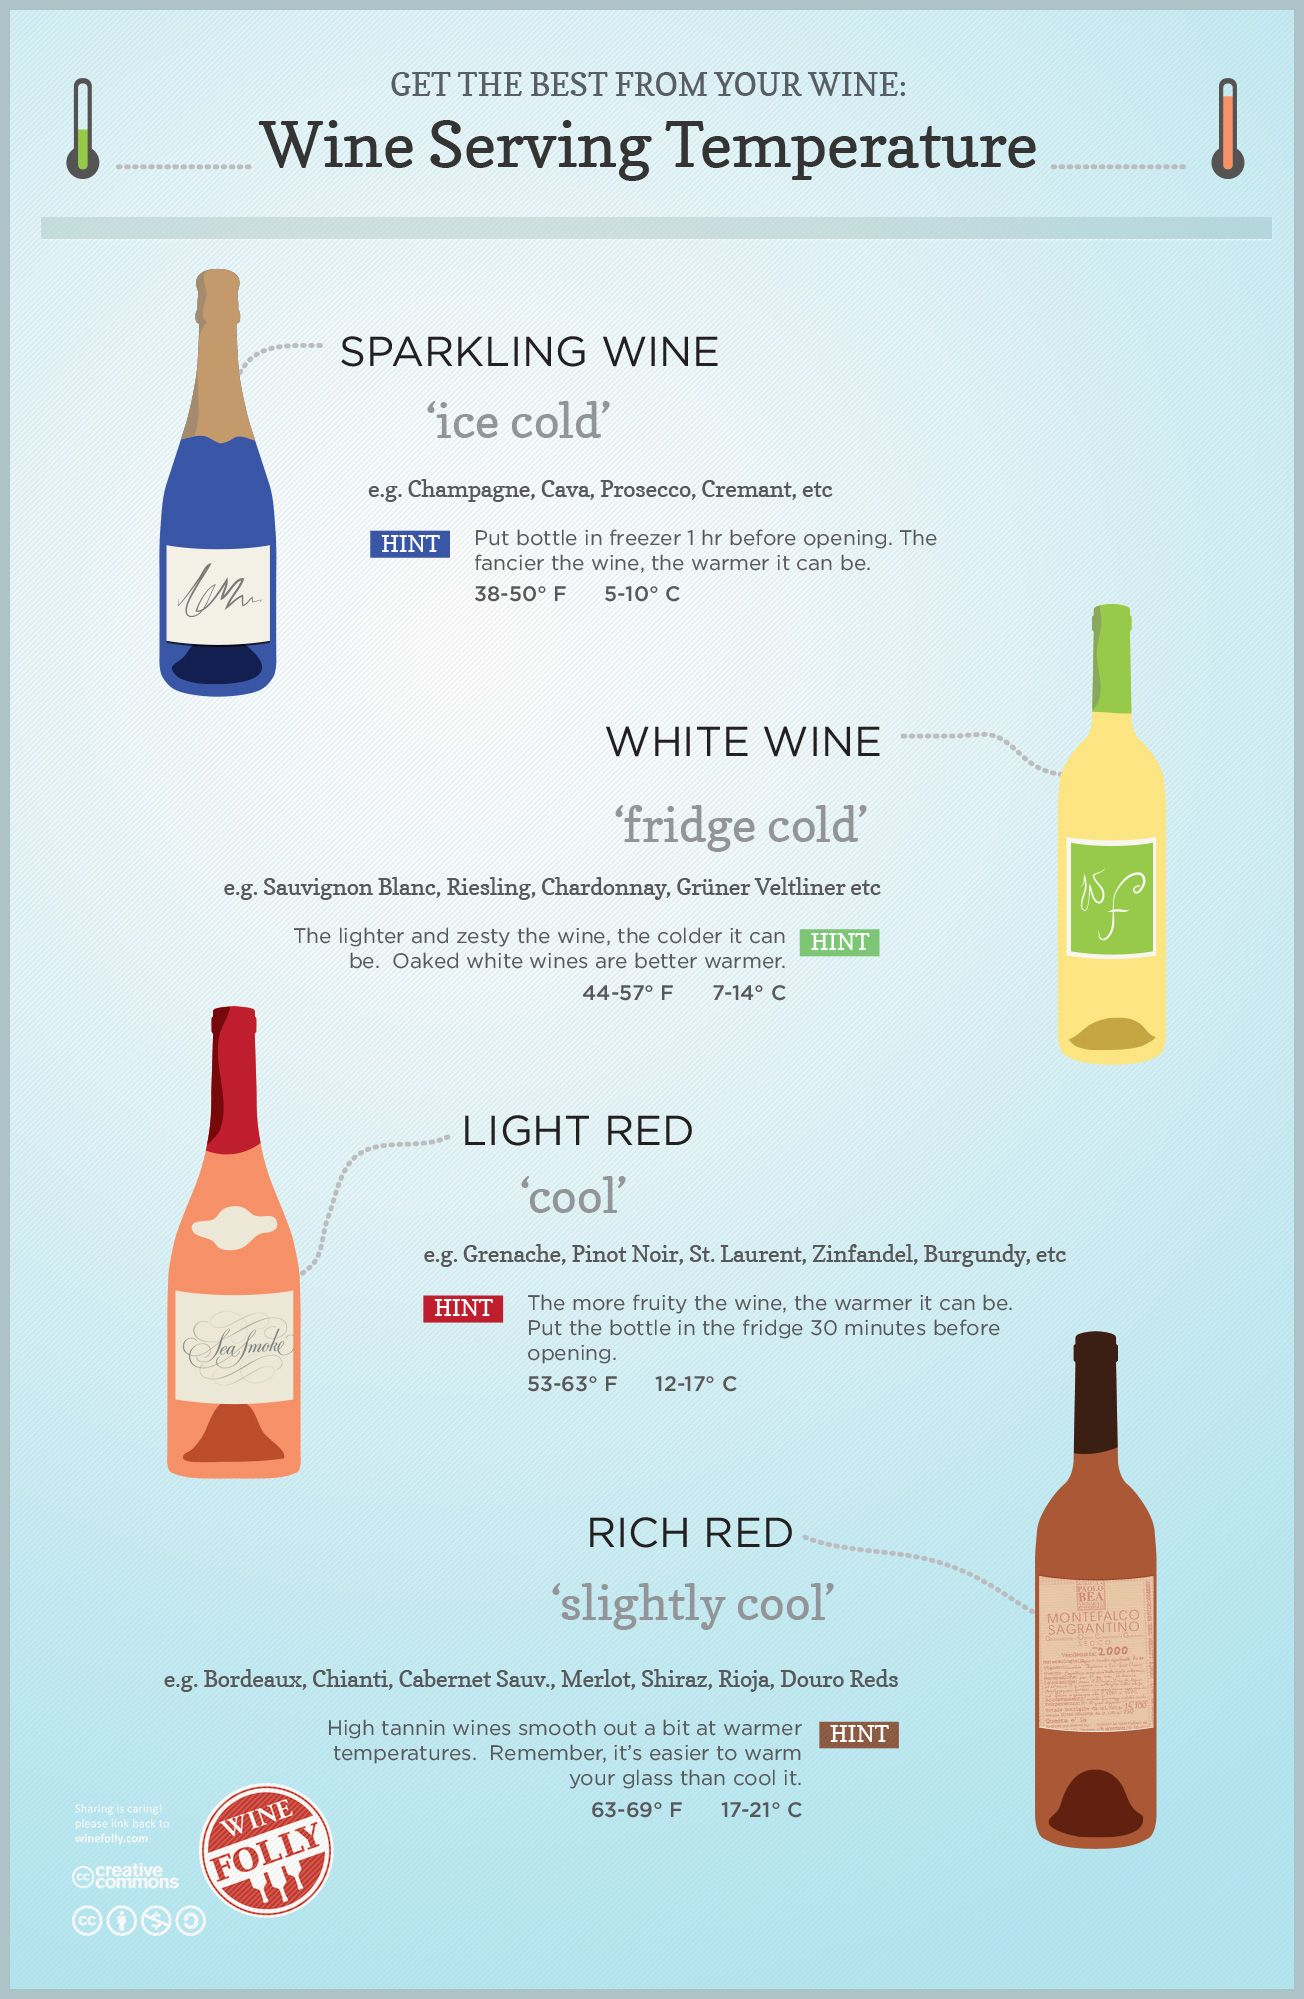 Does Temperature Really Matter? Wine Serving Survival Guide | Wine Folly - July 22, 2013